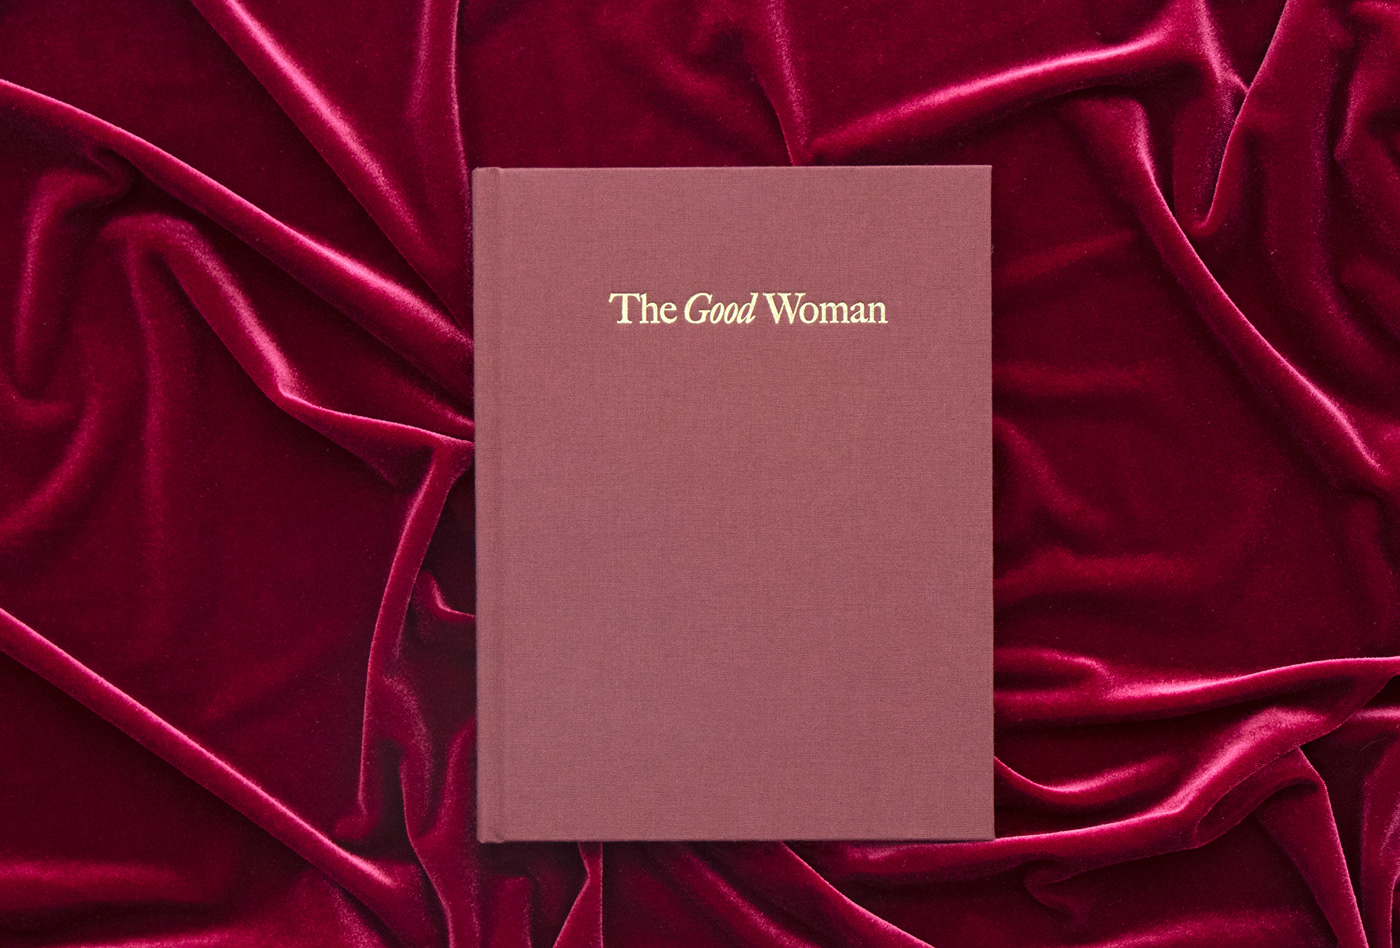 editorial design  book Bookdesign graphic design  Photography  Layout printdesign woman role society